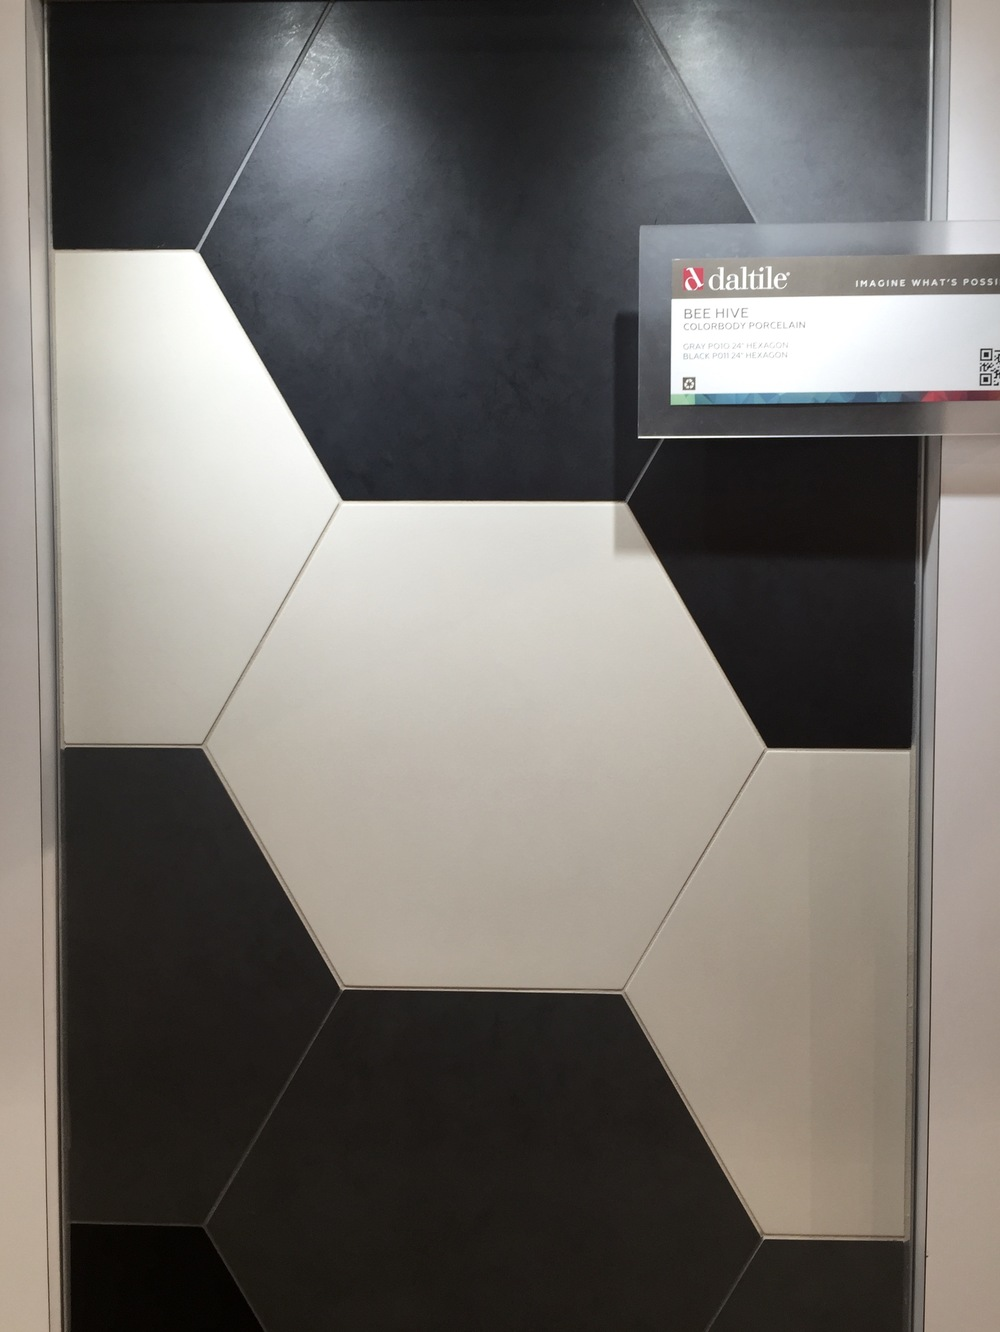 ONTREND The Hex Beehive Tile Shape See Why DESIGNED - Daltile black and white floor tile